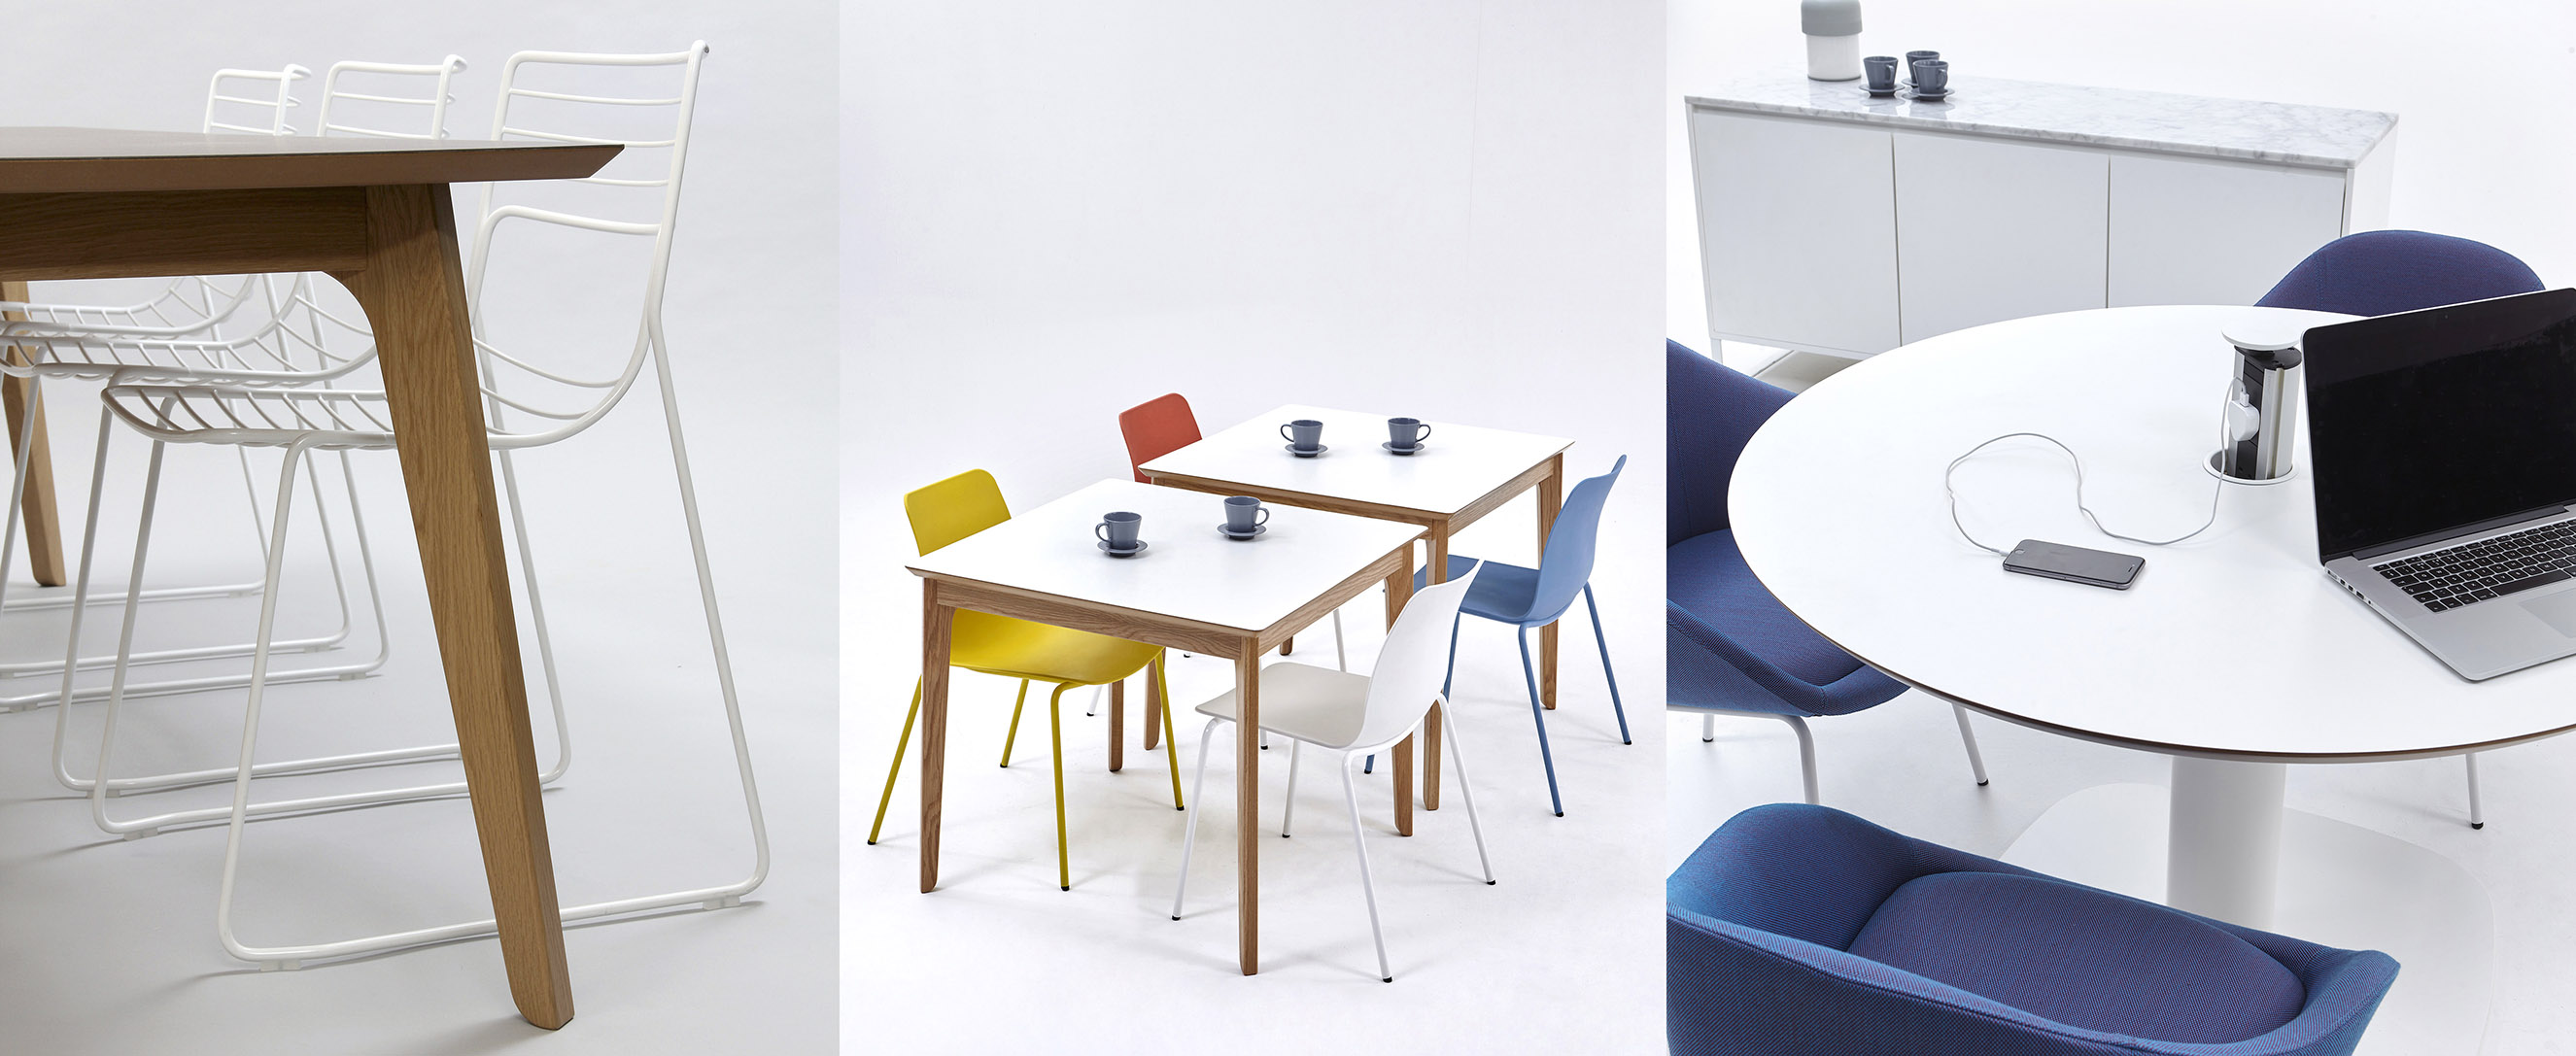 Excellent Naughtone 2015 New Product Overview Corporate Workspace Caraccident5 Cool Chair Designs And Ideas Caraccident5Info